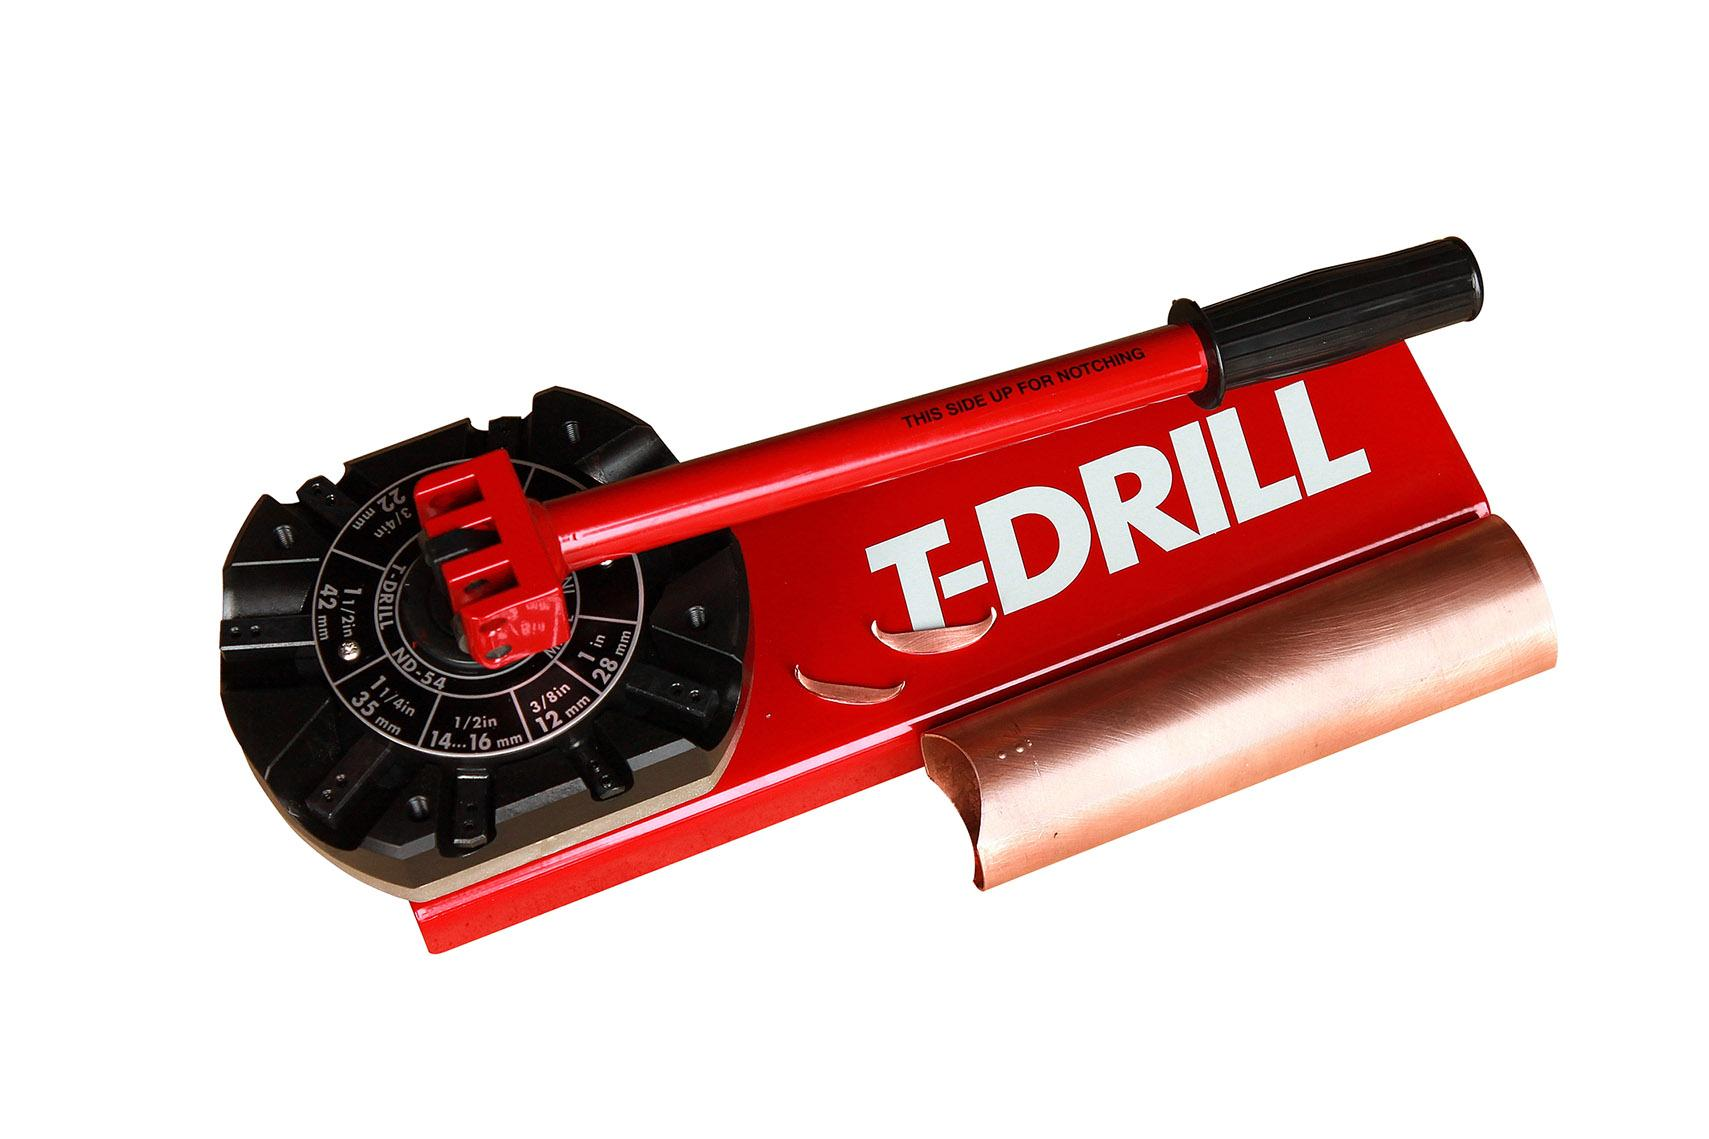 T-DRILL ND-54 Tube End Notcher with copper tube